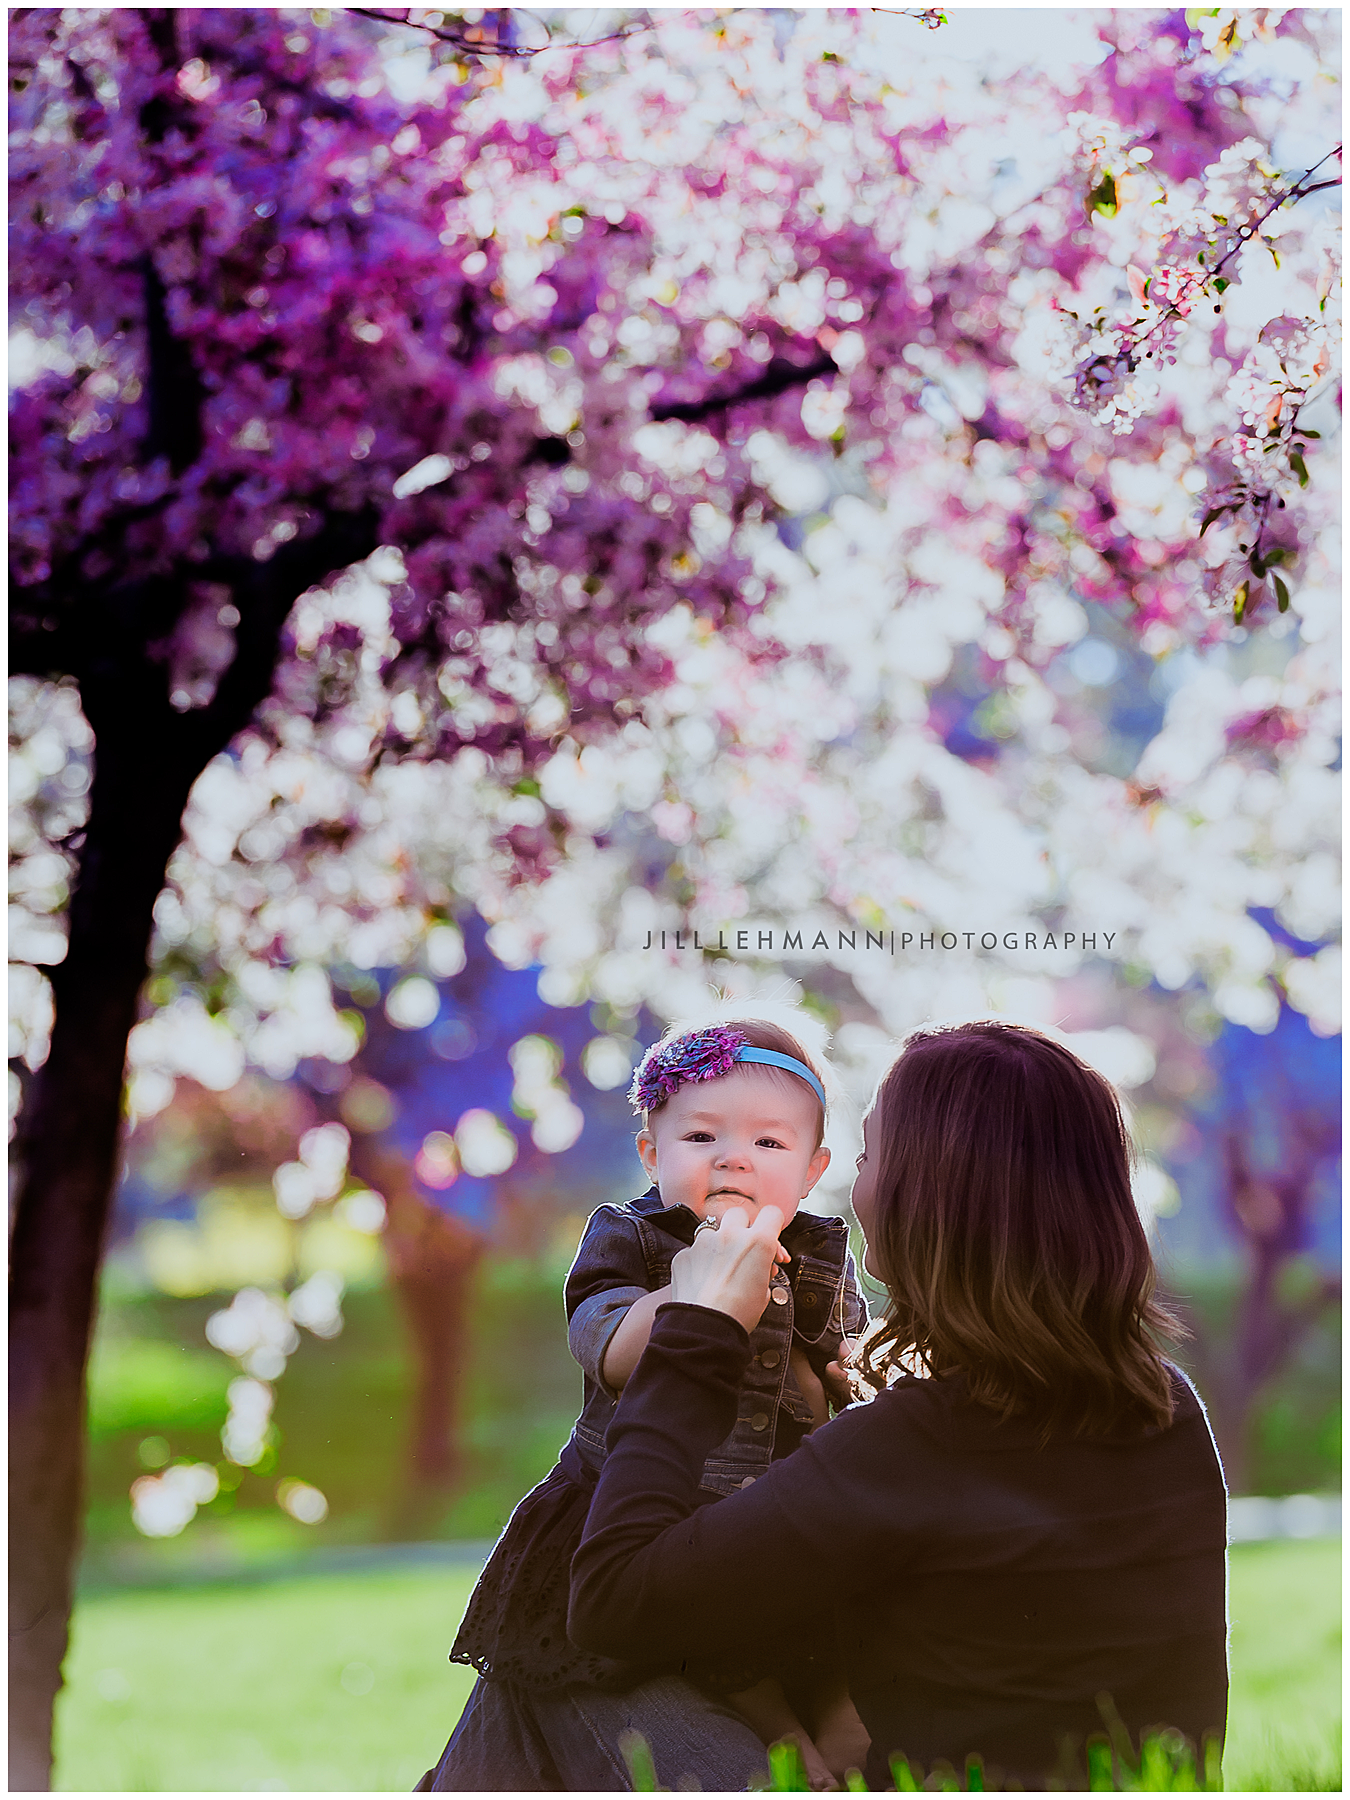 Baby / Child / Family Photographer in Des Moines, IA